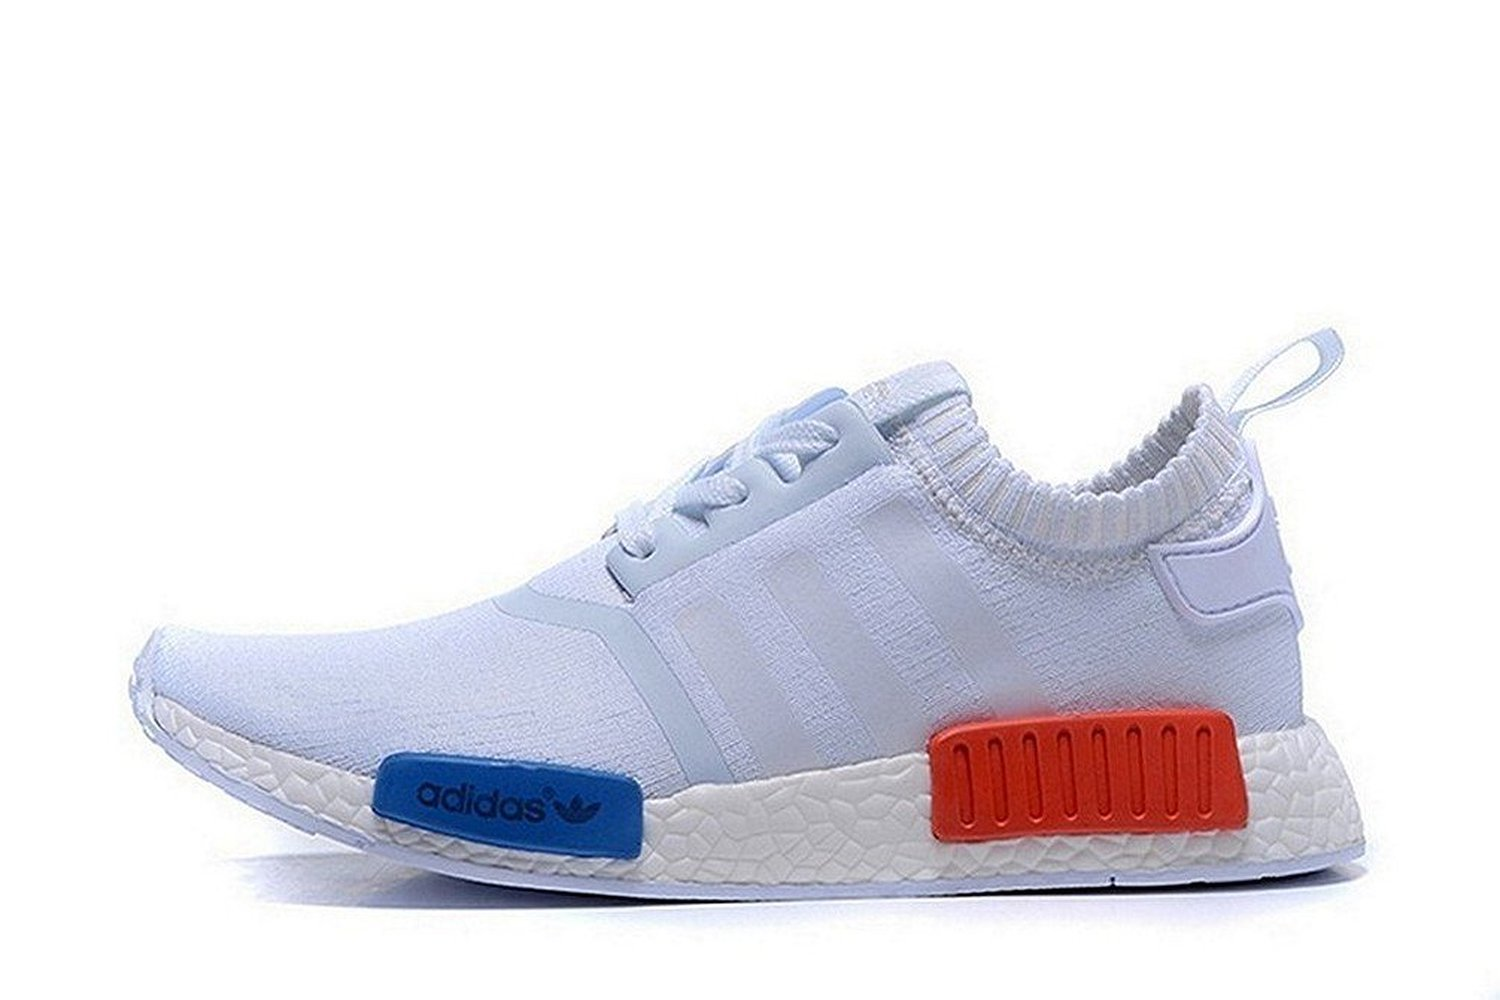 hot sale online 4b1ab 0cf14 Amazon.com: NMD R1 - by3058 Women's Solar Boost M Running ...